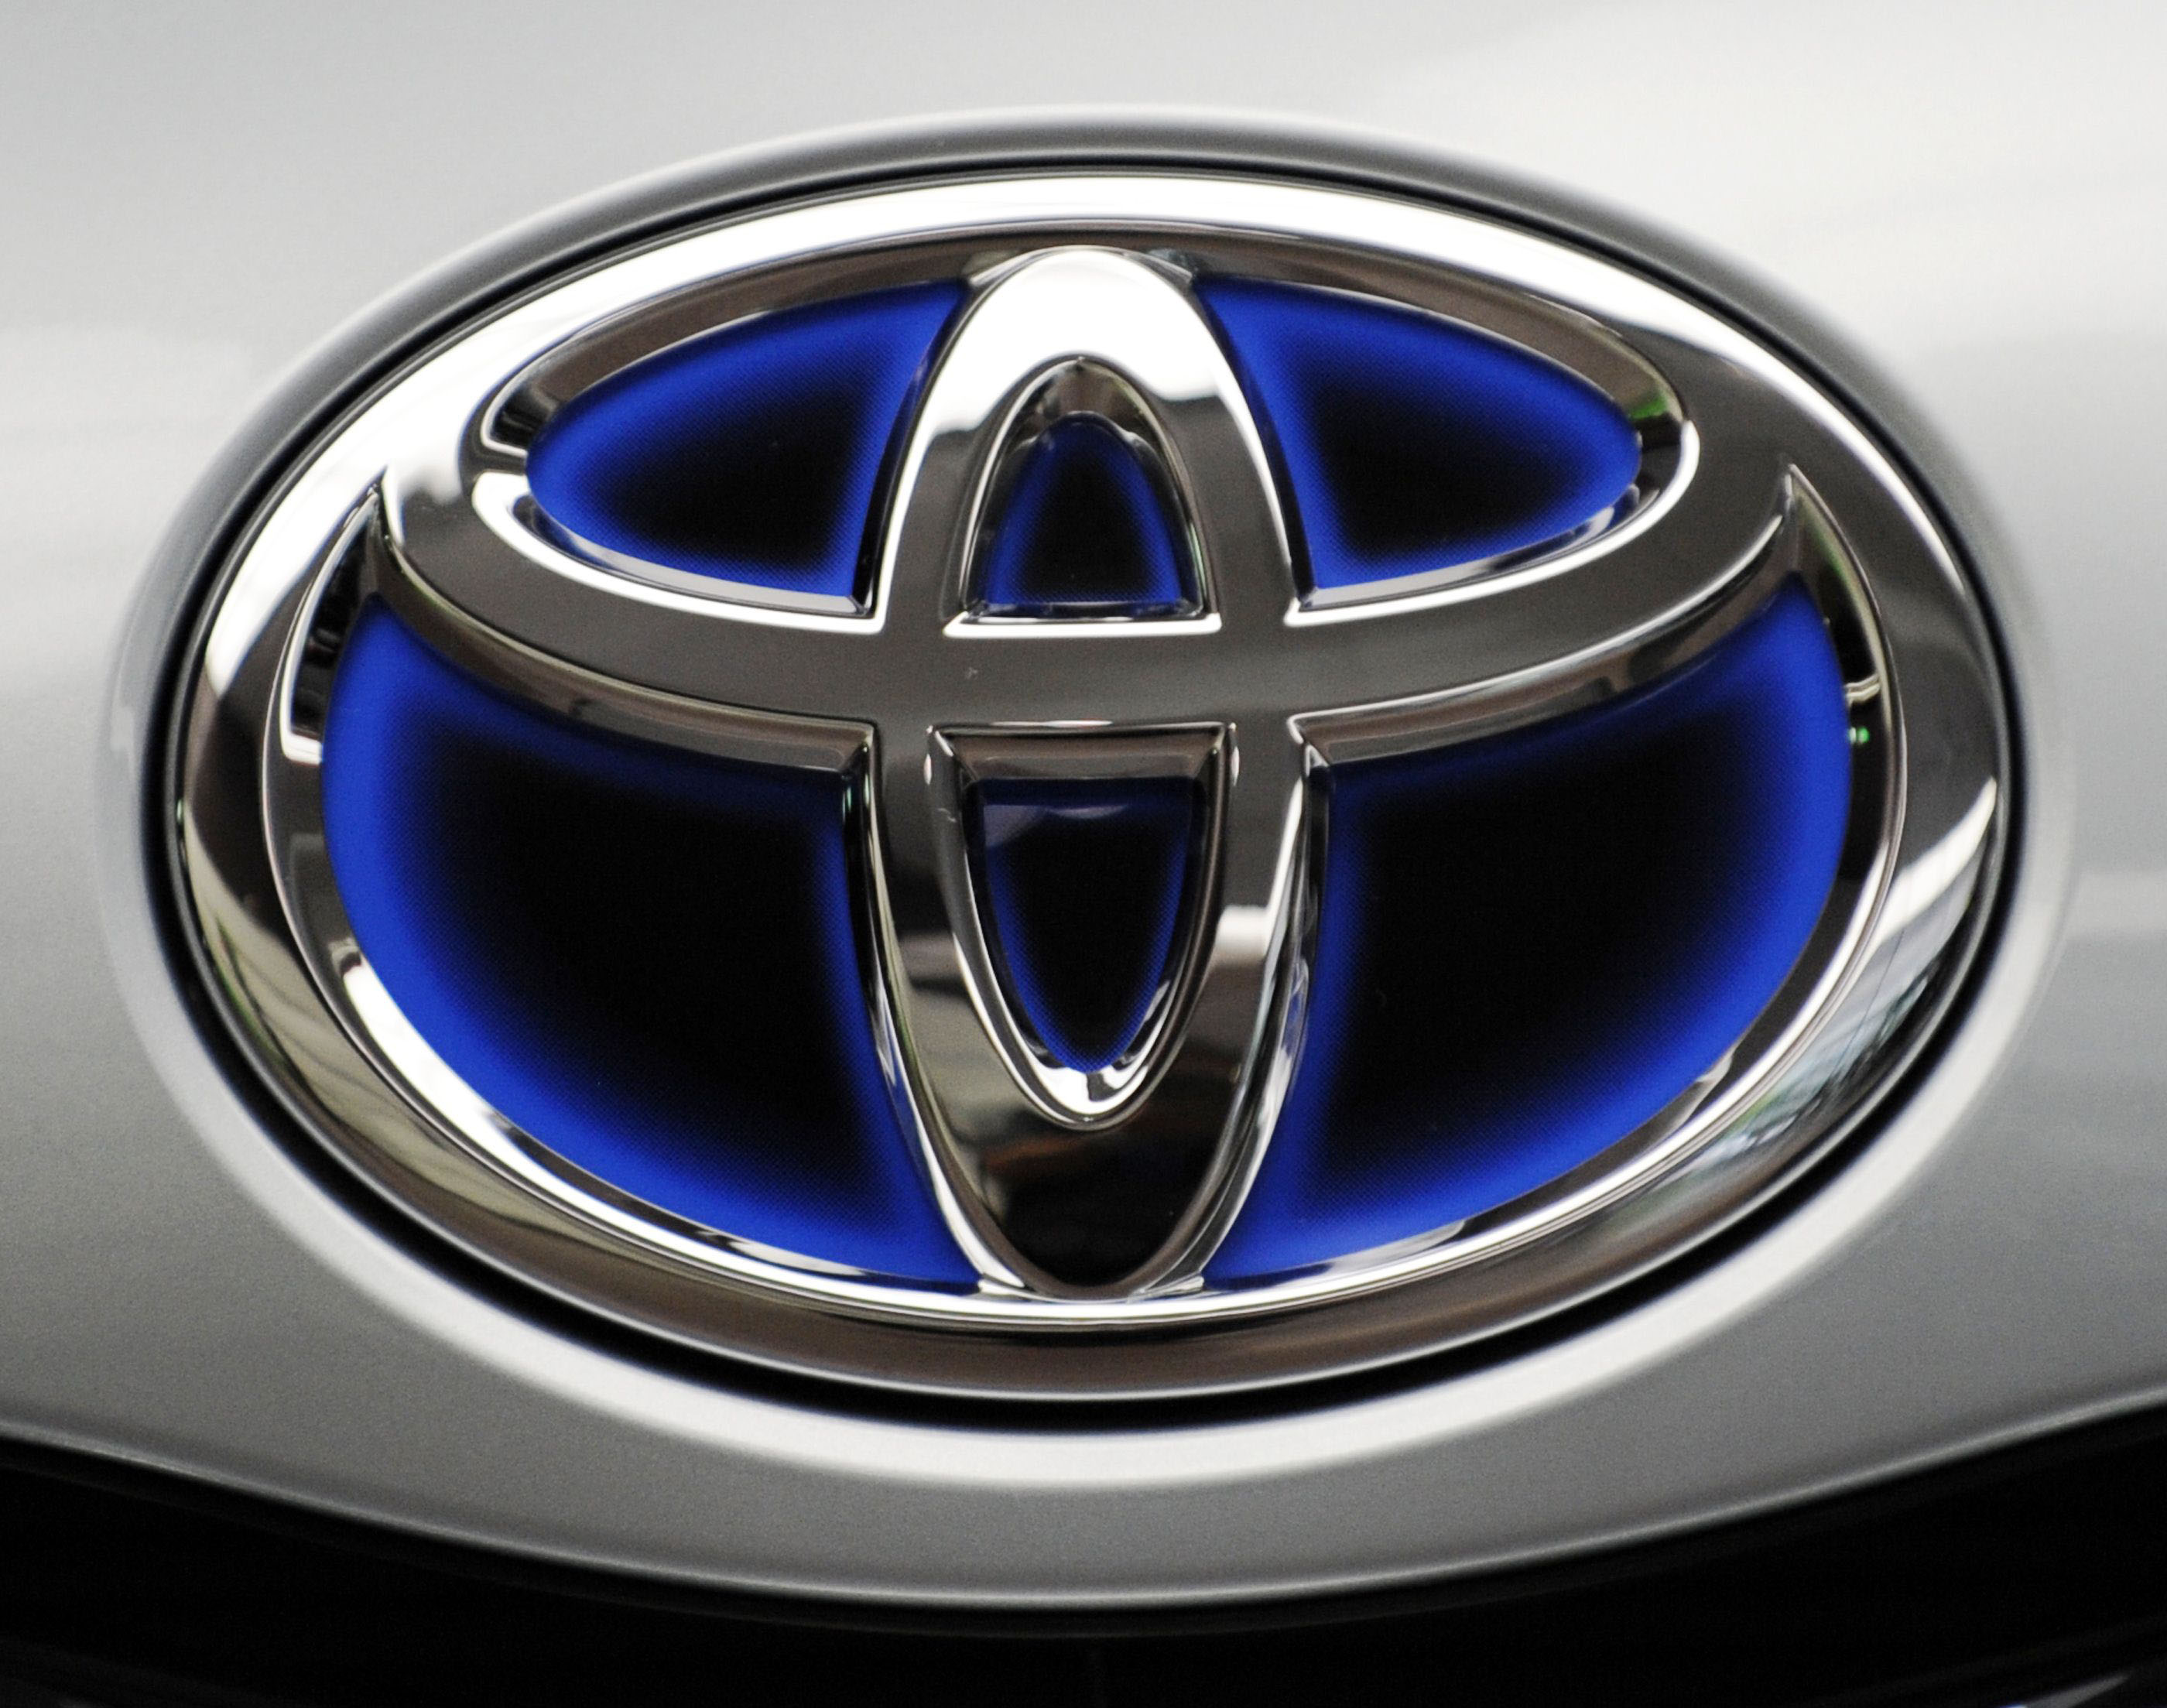 Toyota profits skyrocket amid recovery from 3/11 disasters